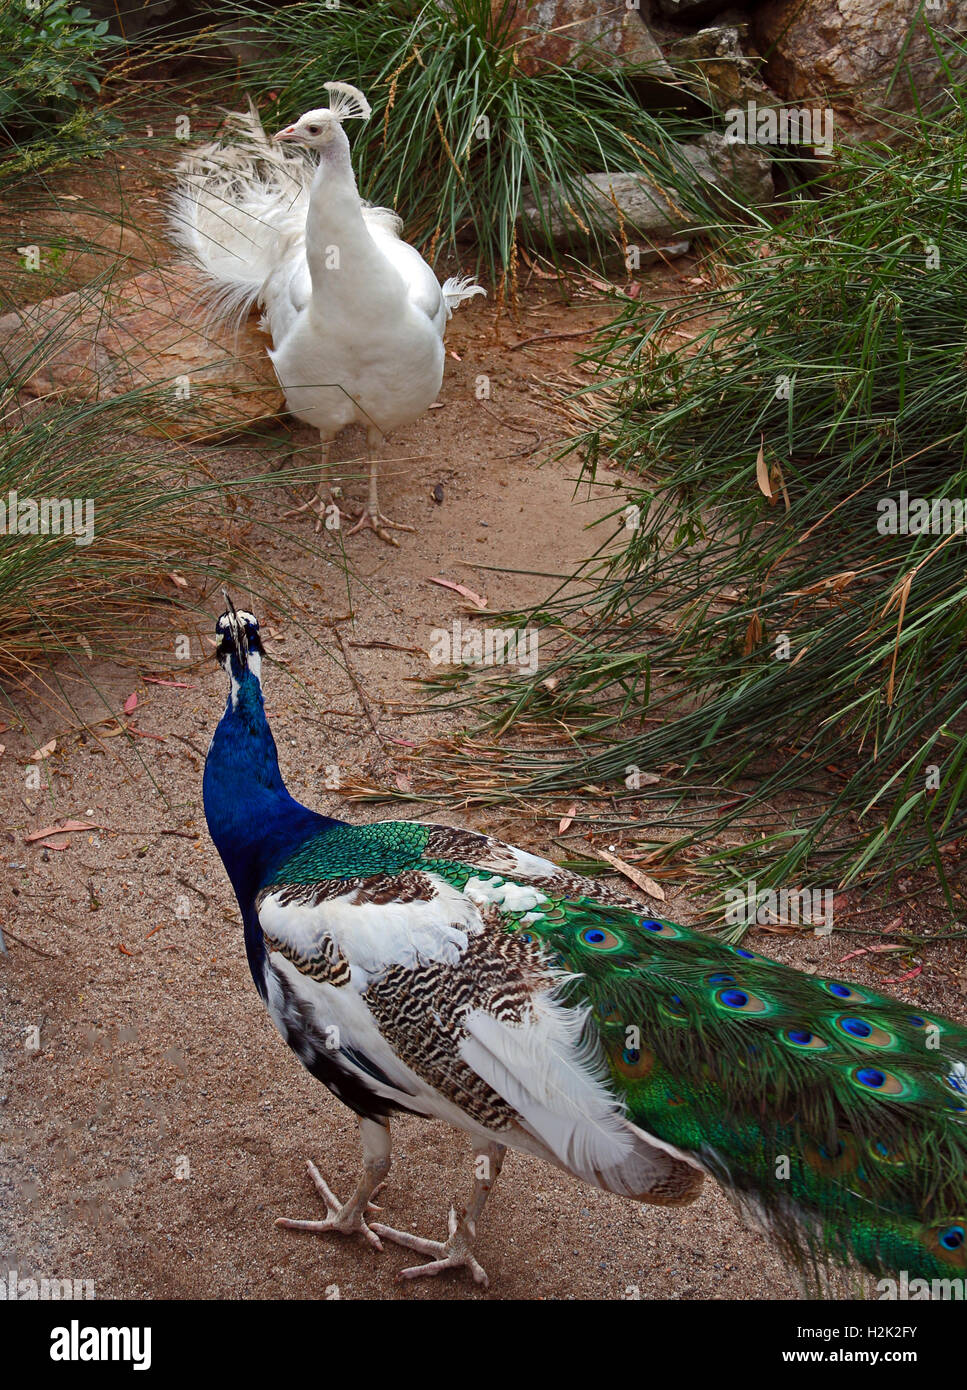 Blue Green and White Peacock and Albino Peacock facing off against each other in mountains near Adelaide Australia Stock Photo